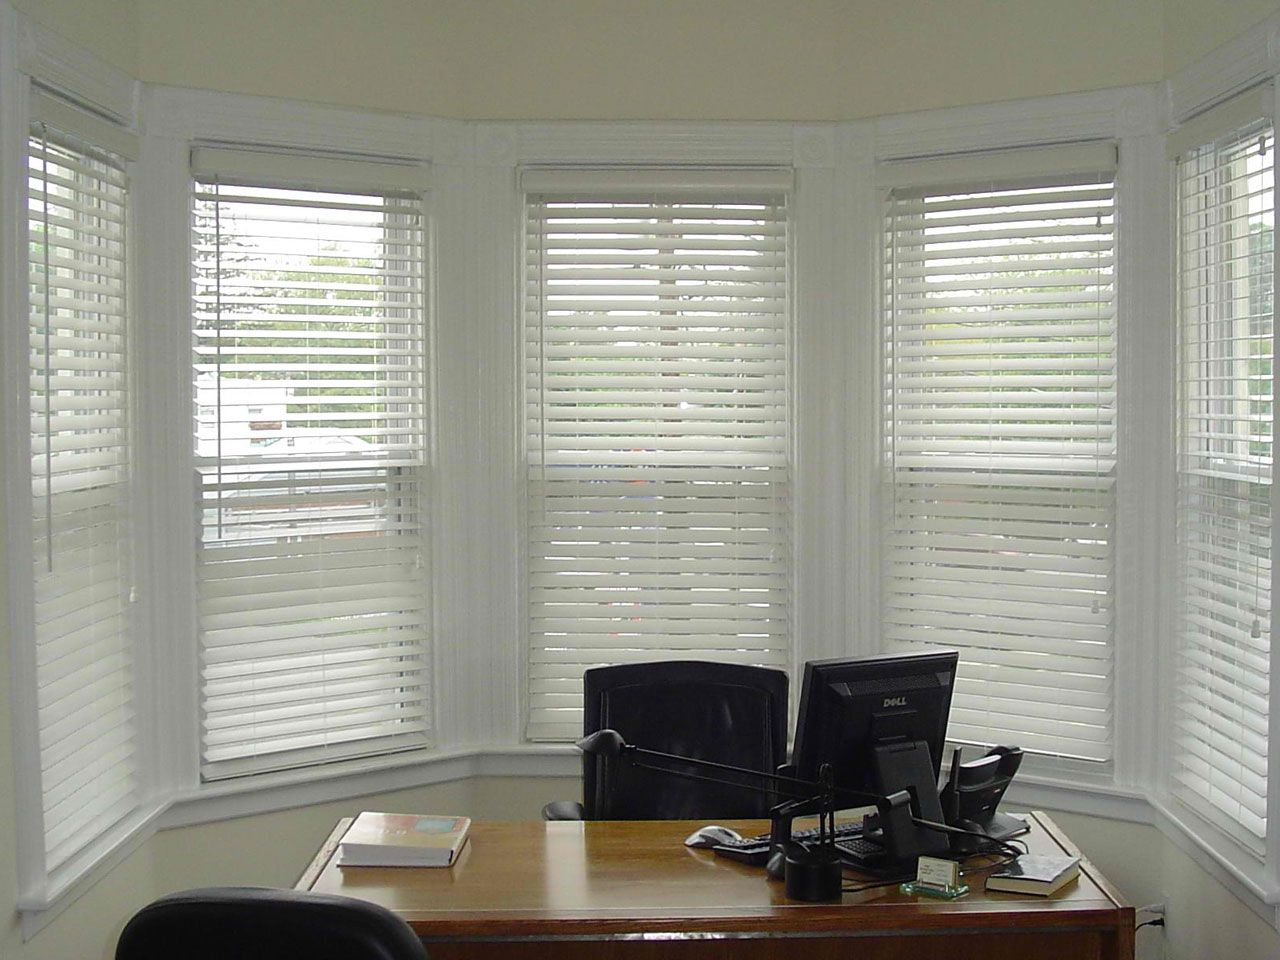 Vertical Blinds Chilliwack Has Been Thought Of As One Of Those Essential  Things That We Really